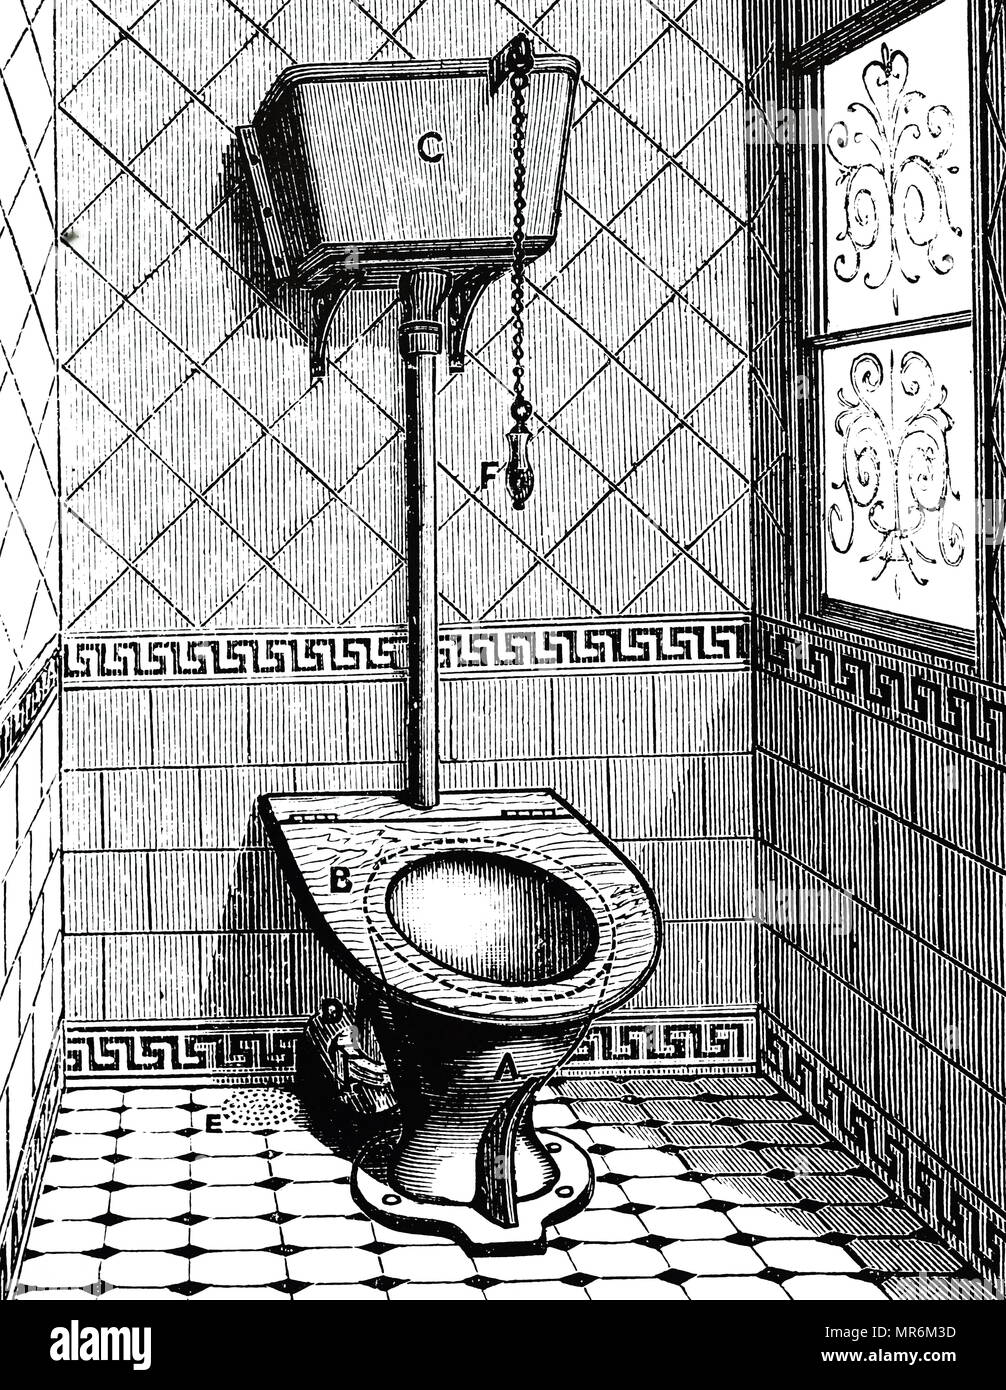 Engraving depicting a pedestal WC with siphon flushing system. Dated 19th century - Stock Image